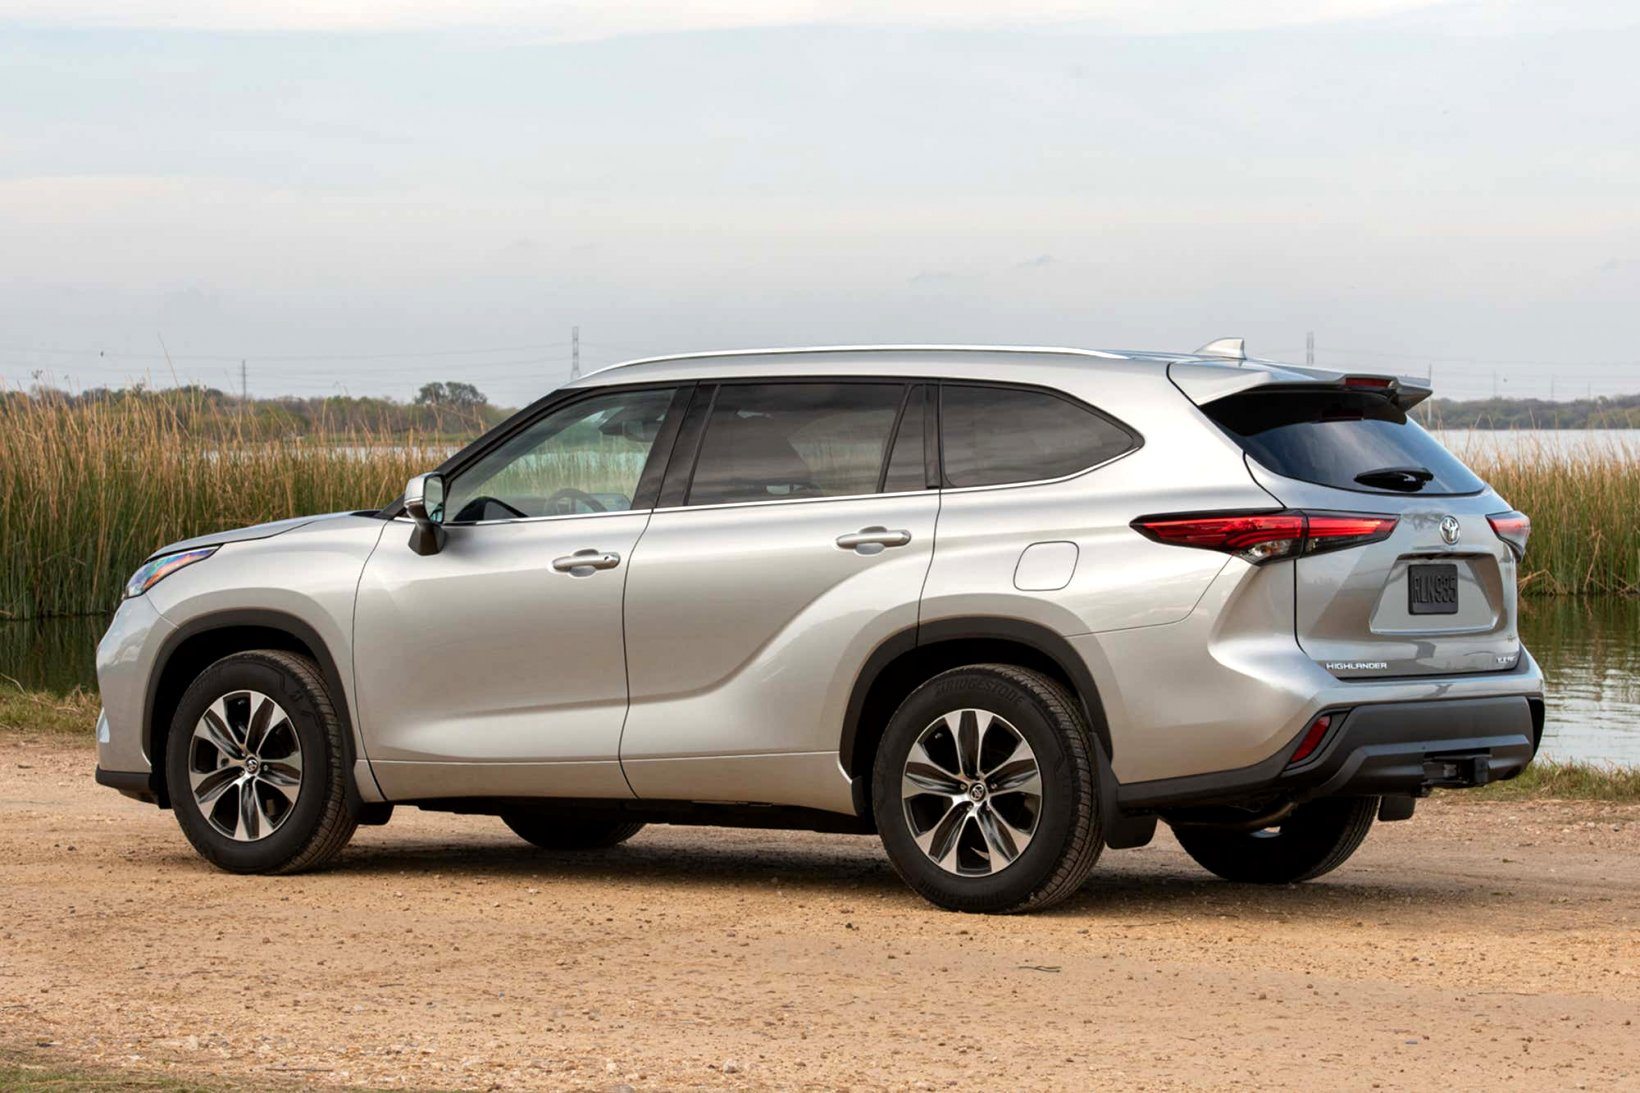 2020 toyota highlander review Specs and Review